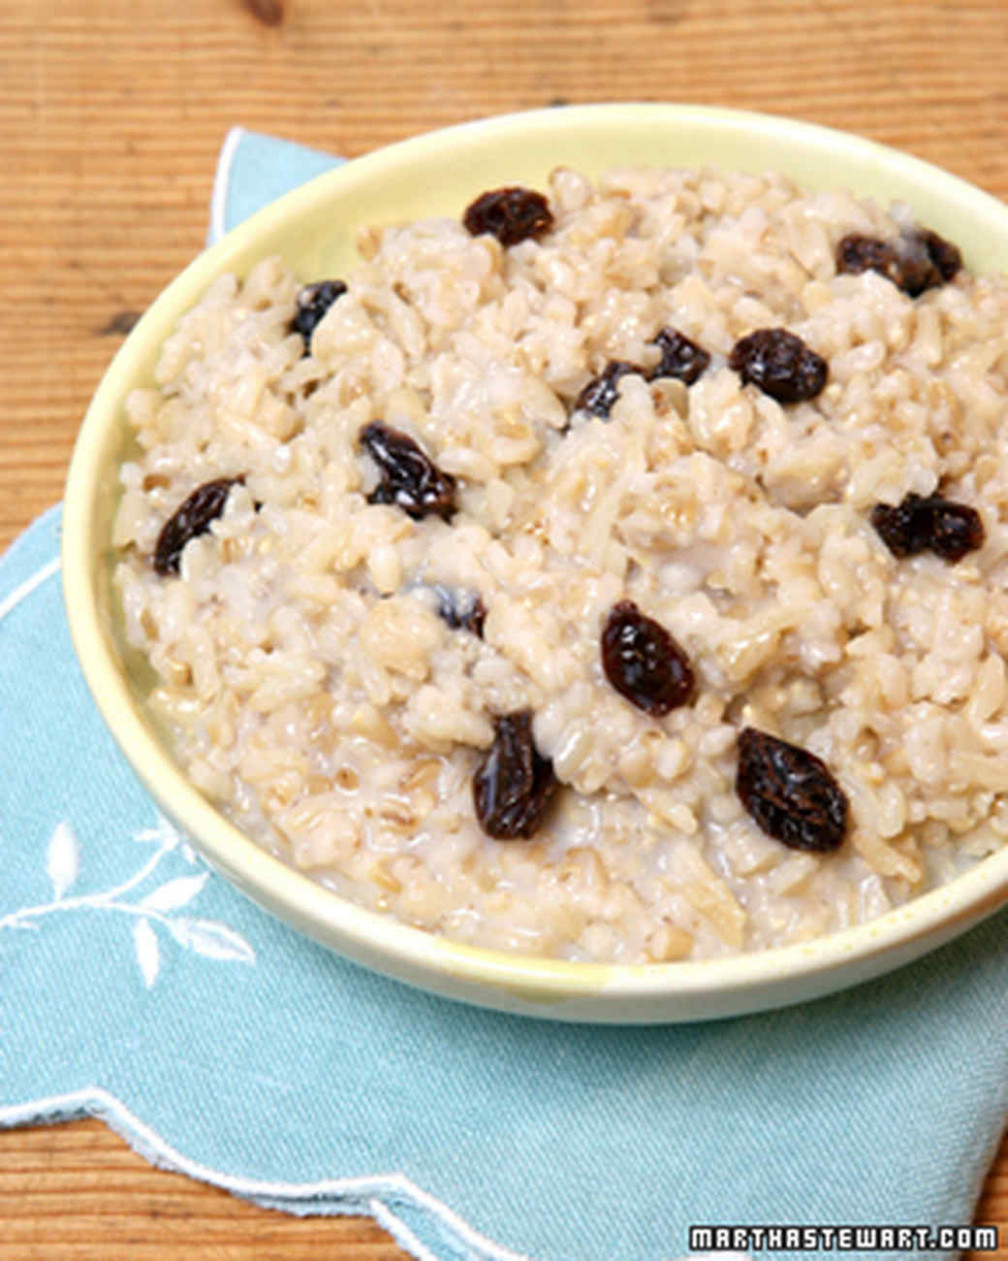 Oatmeal and Other Hot Cereal Recipes | Martha Stewart